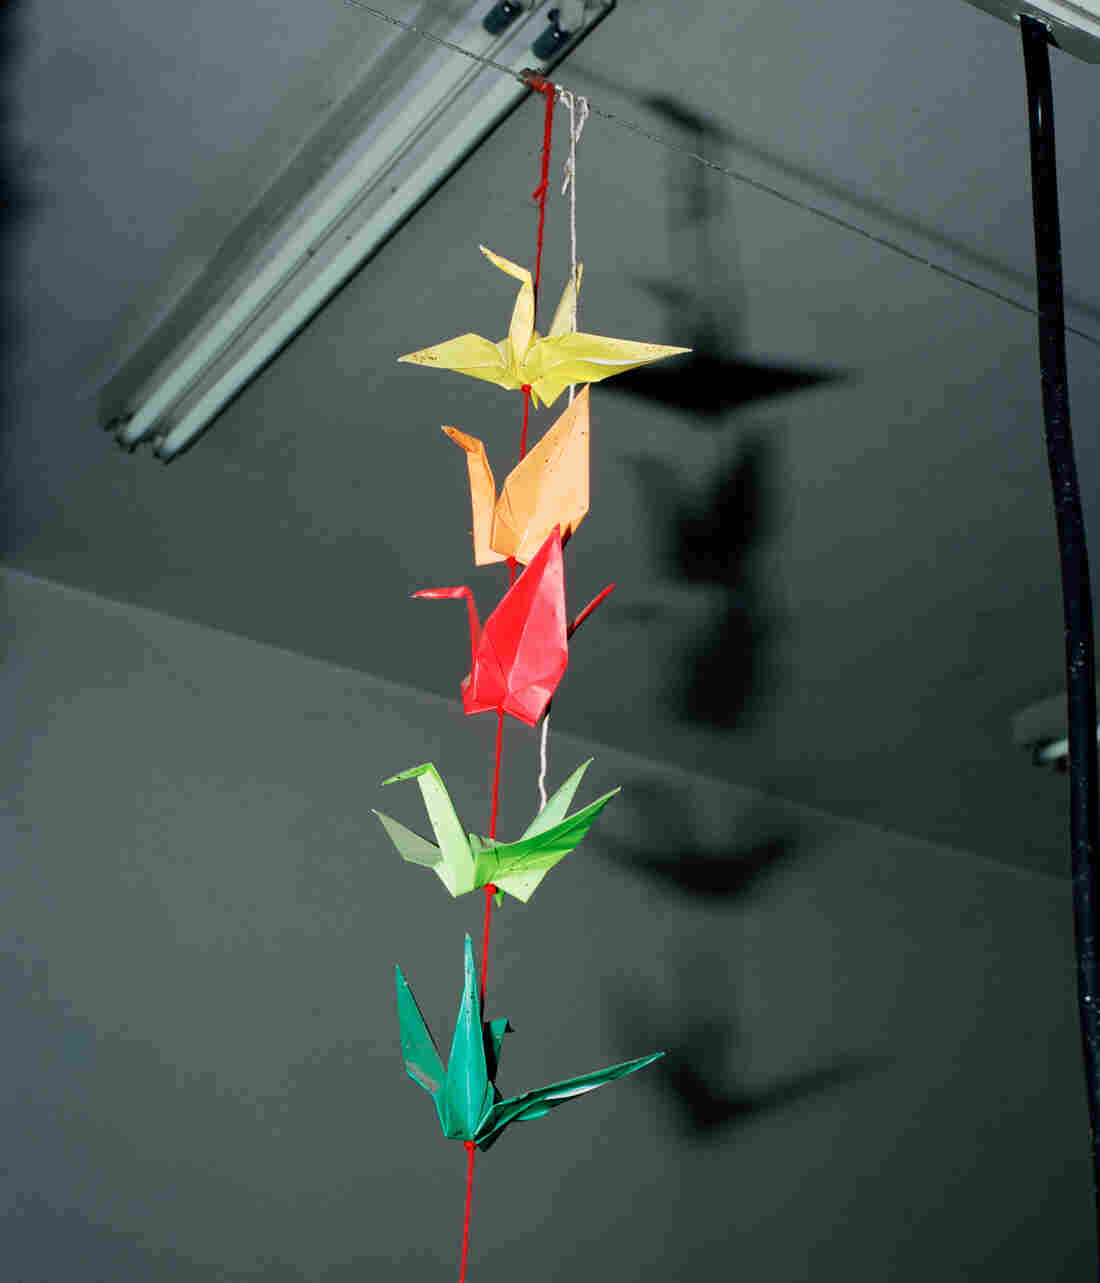 Colorful origami cranes are strung together and hang from the ceiling.